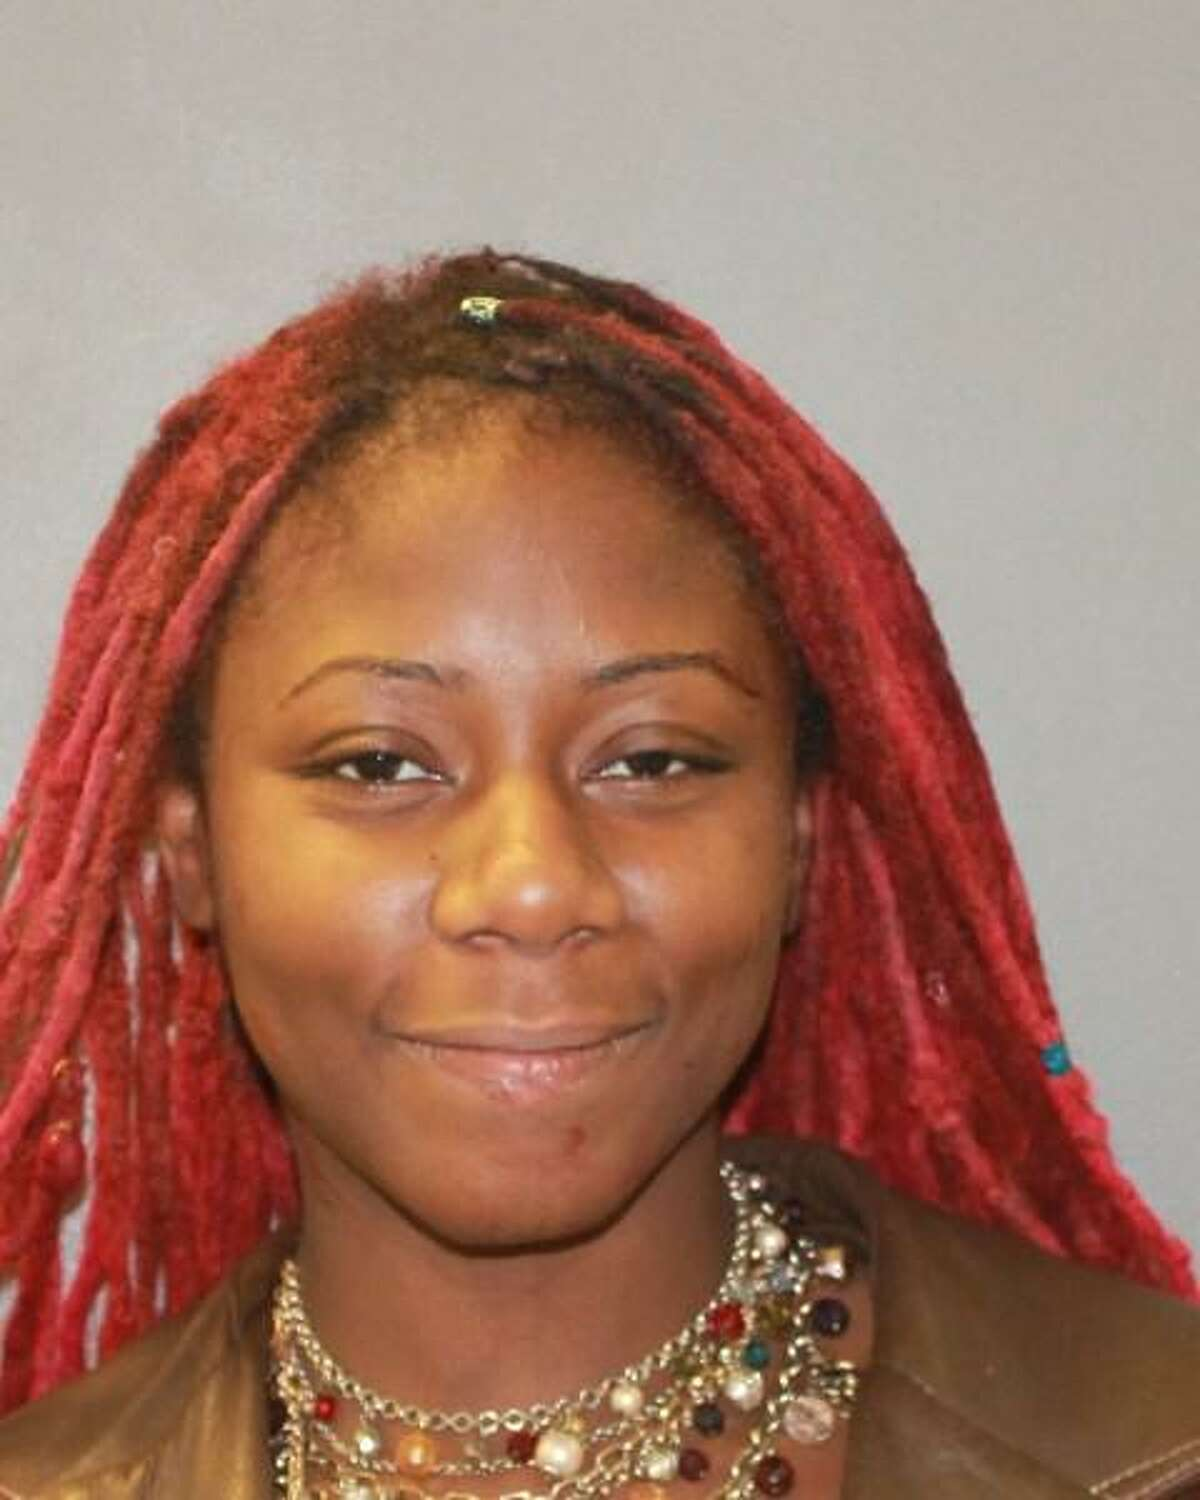 Wisdom South, 25, of New Haven was charged after allegedly punching an employee at a Hamden TGI Fridays, police said.